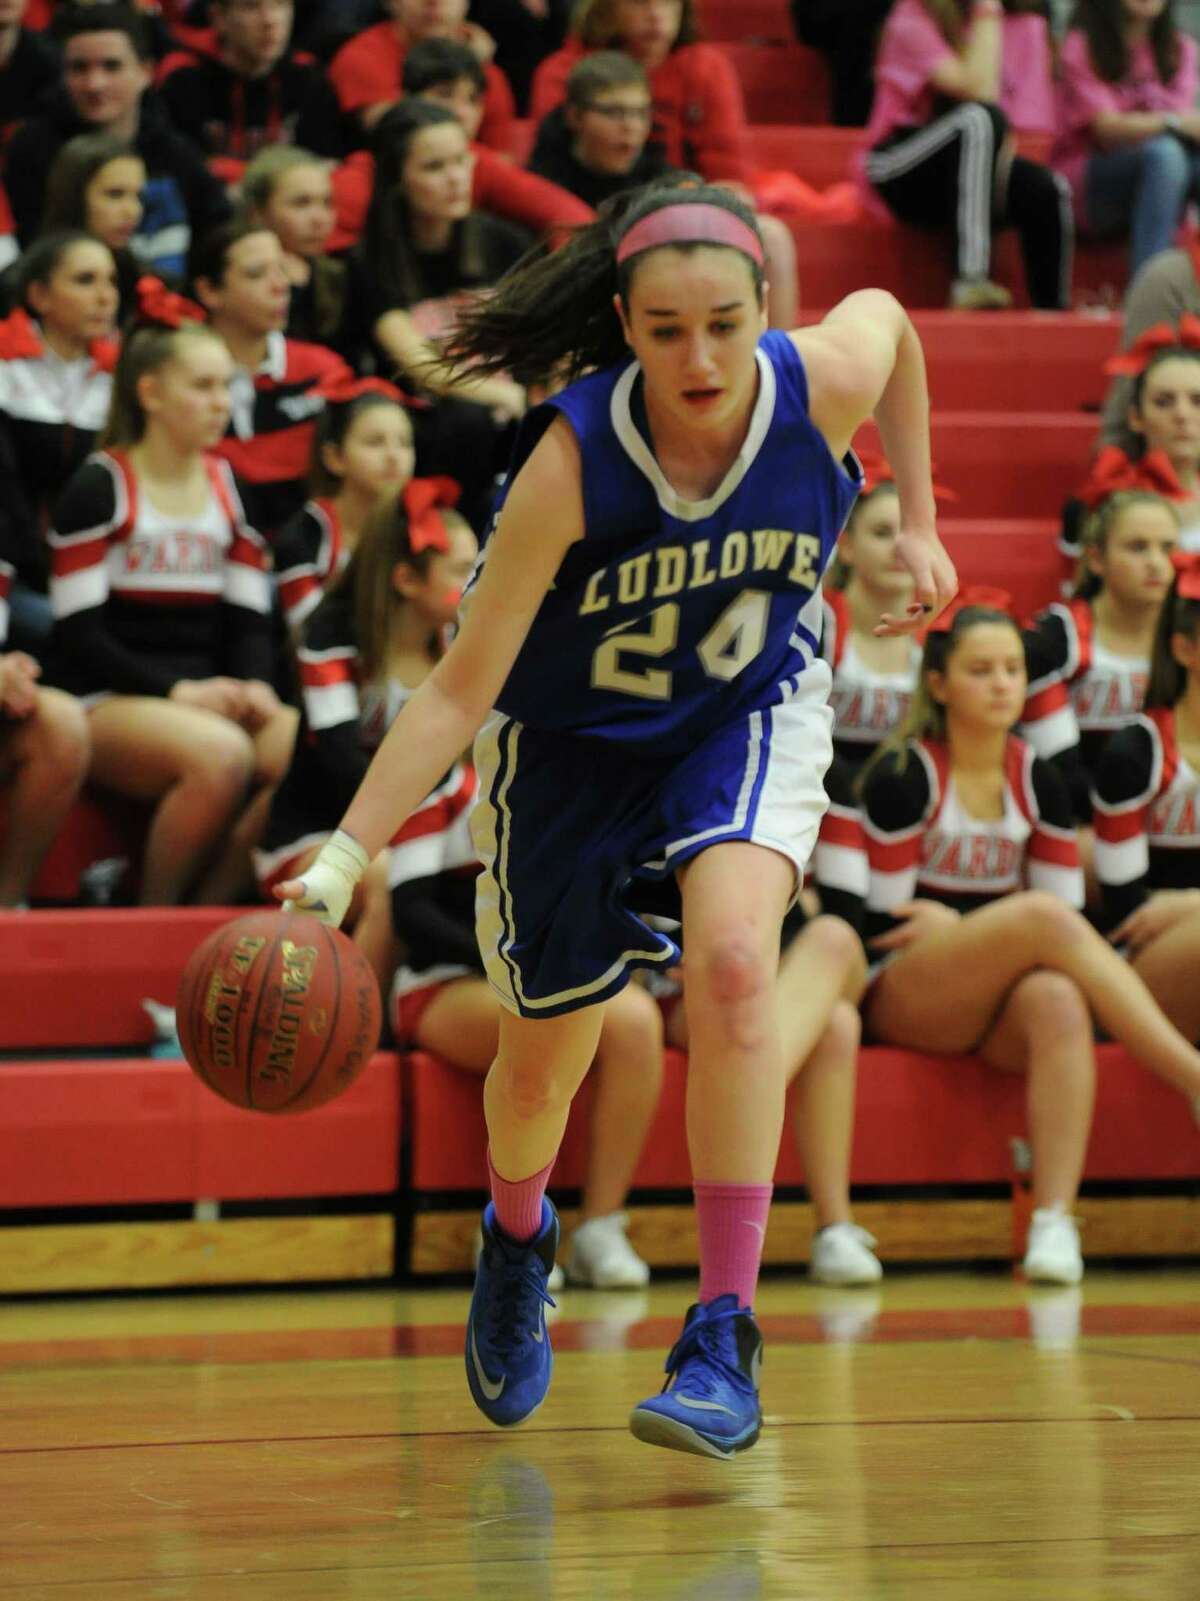 Alex McKinnon (24) of Fairfield Ludlowe bring the ball up the floor during a game against Fairfield Warde at Fairfield Warde High School on February 11, 2016 in Fairfield, Connecticut.